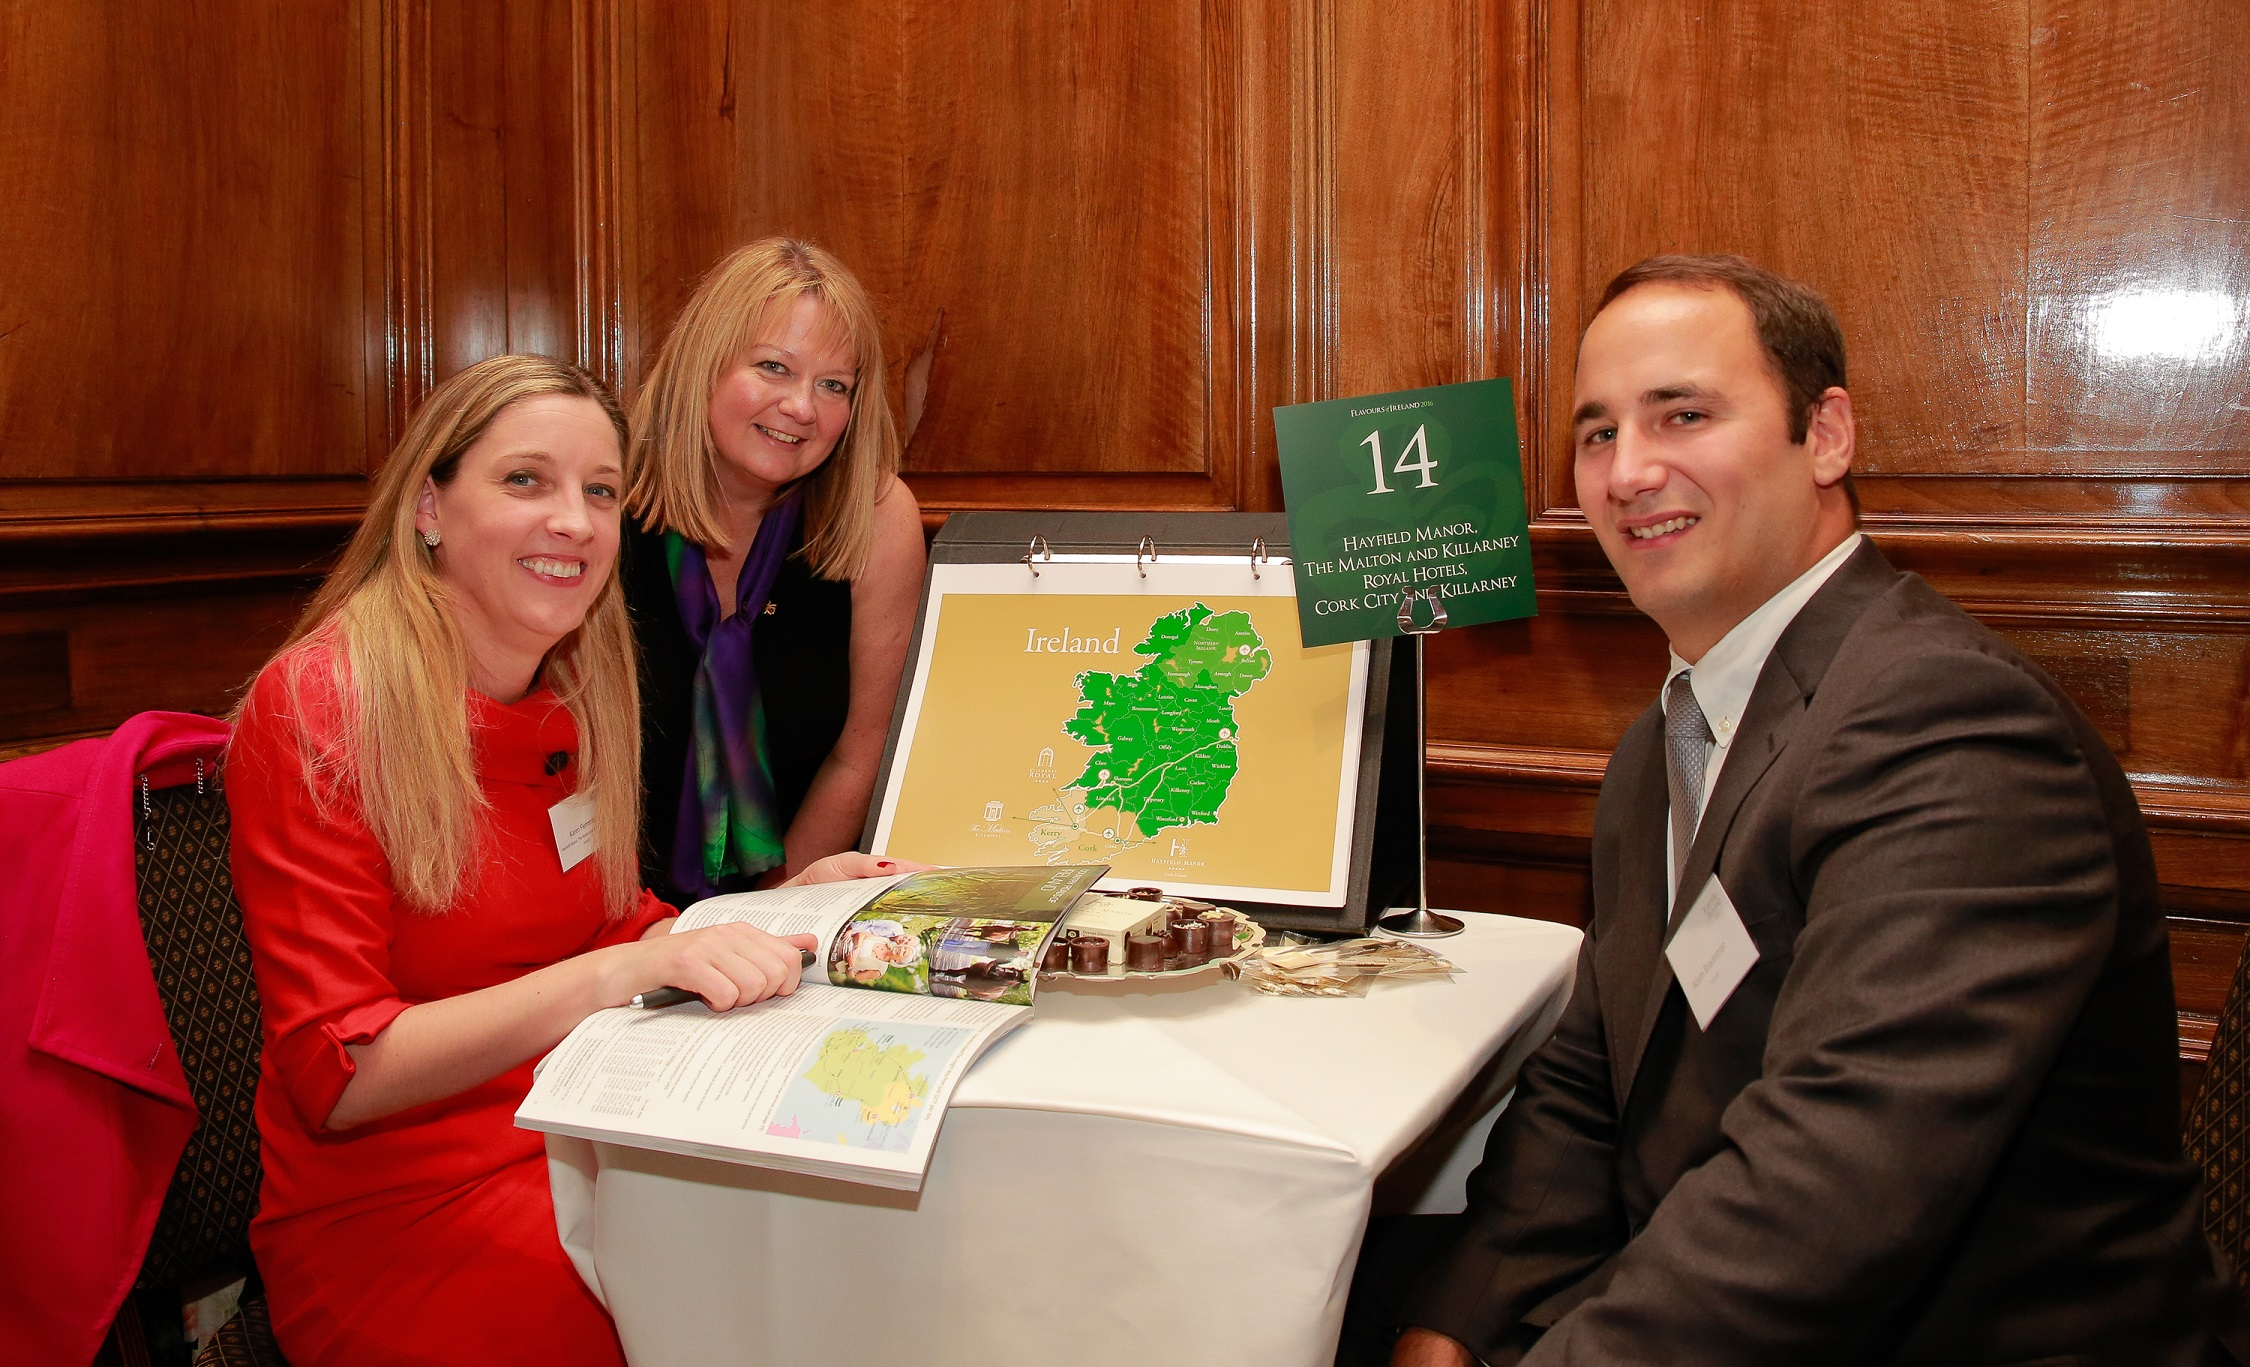 Cork hotels out in force at 'Flavours' tourism event in London